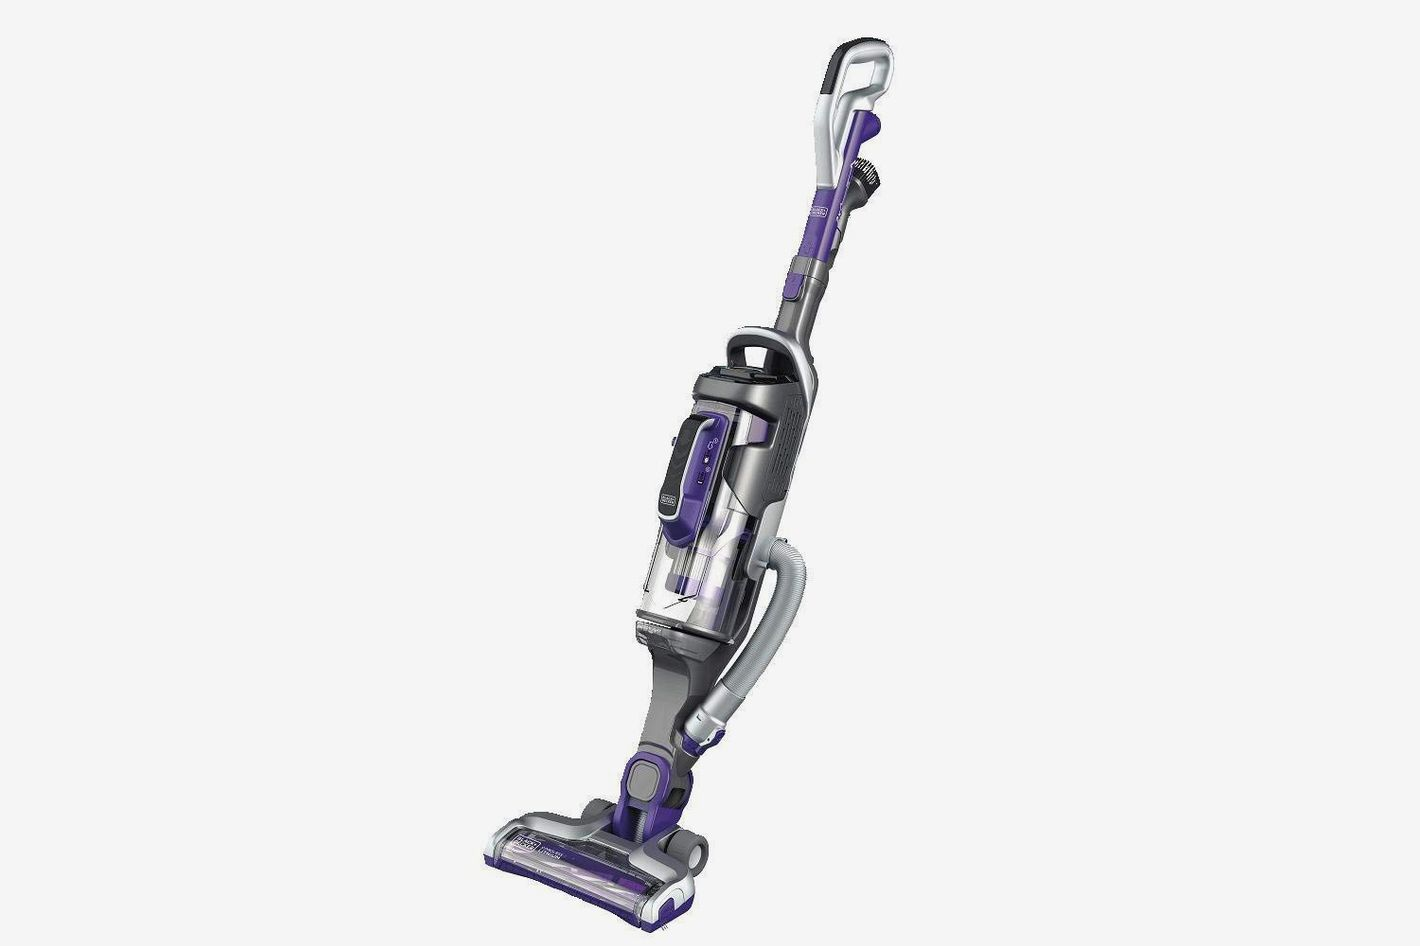 Black & Decker Power Series Pro Cordless Lithium 2in1 Pet Stick Vacuum